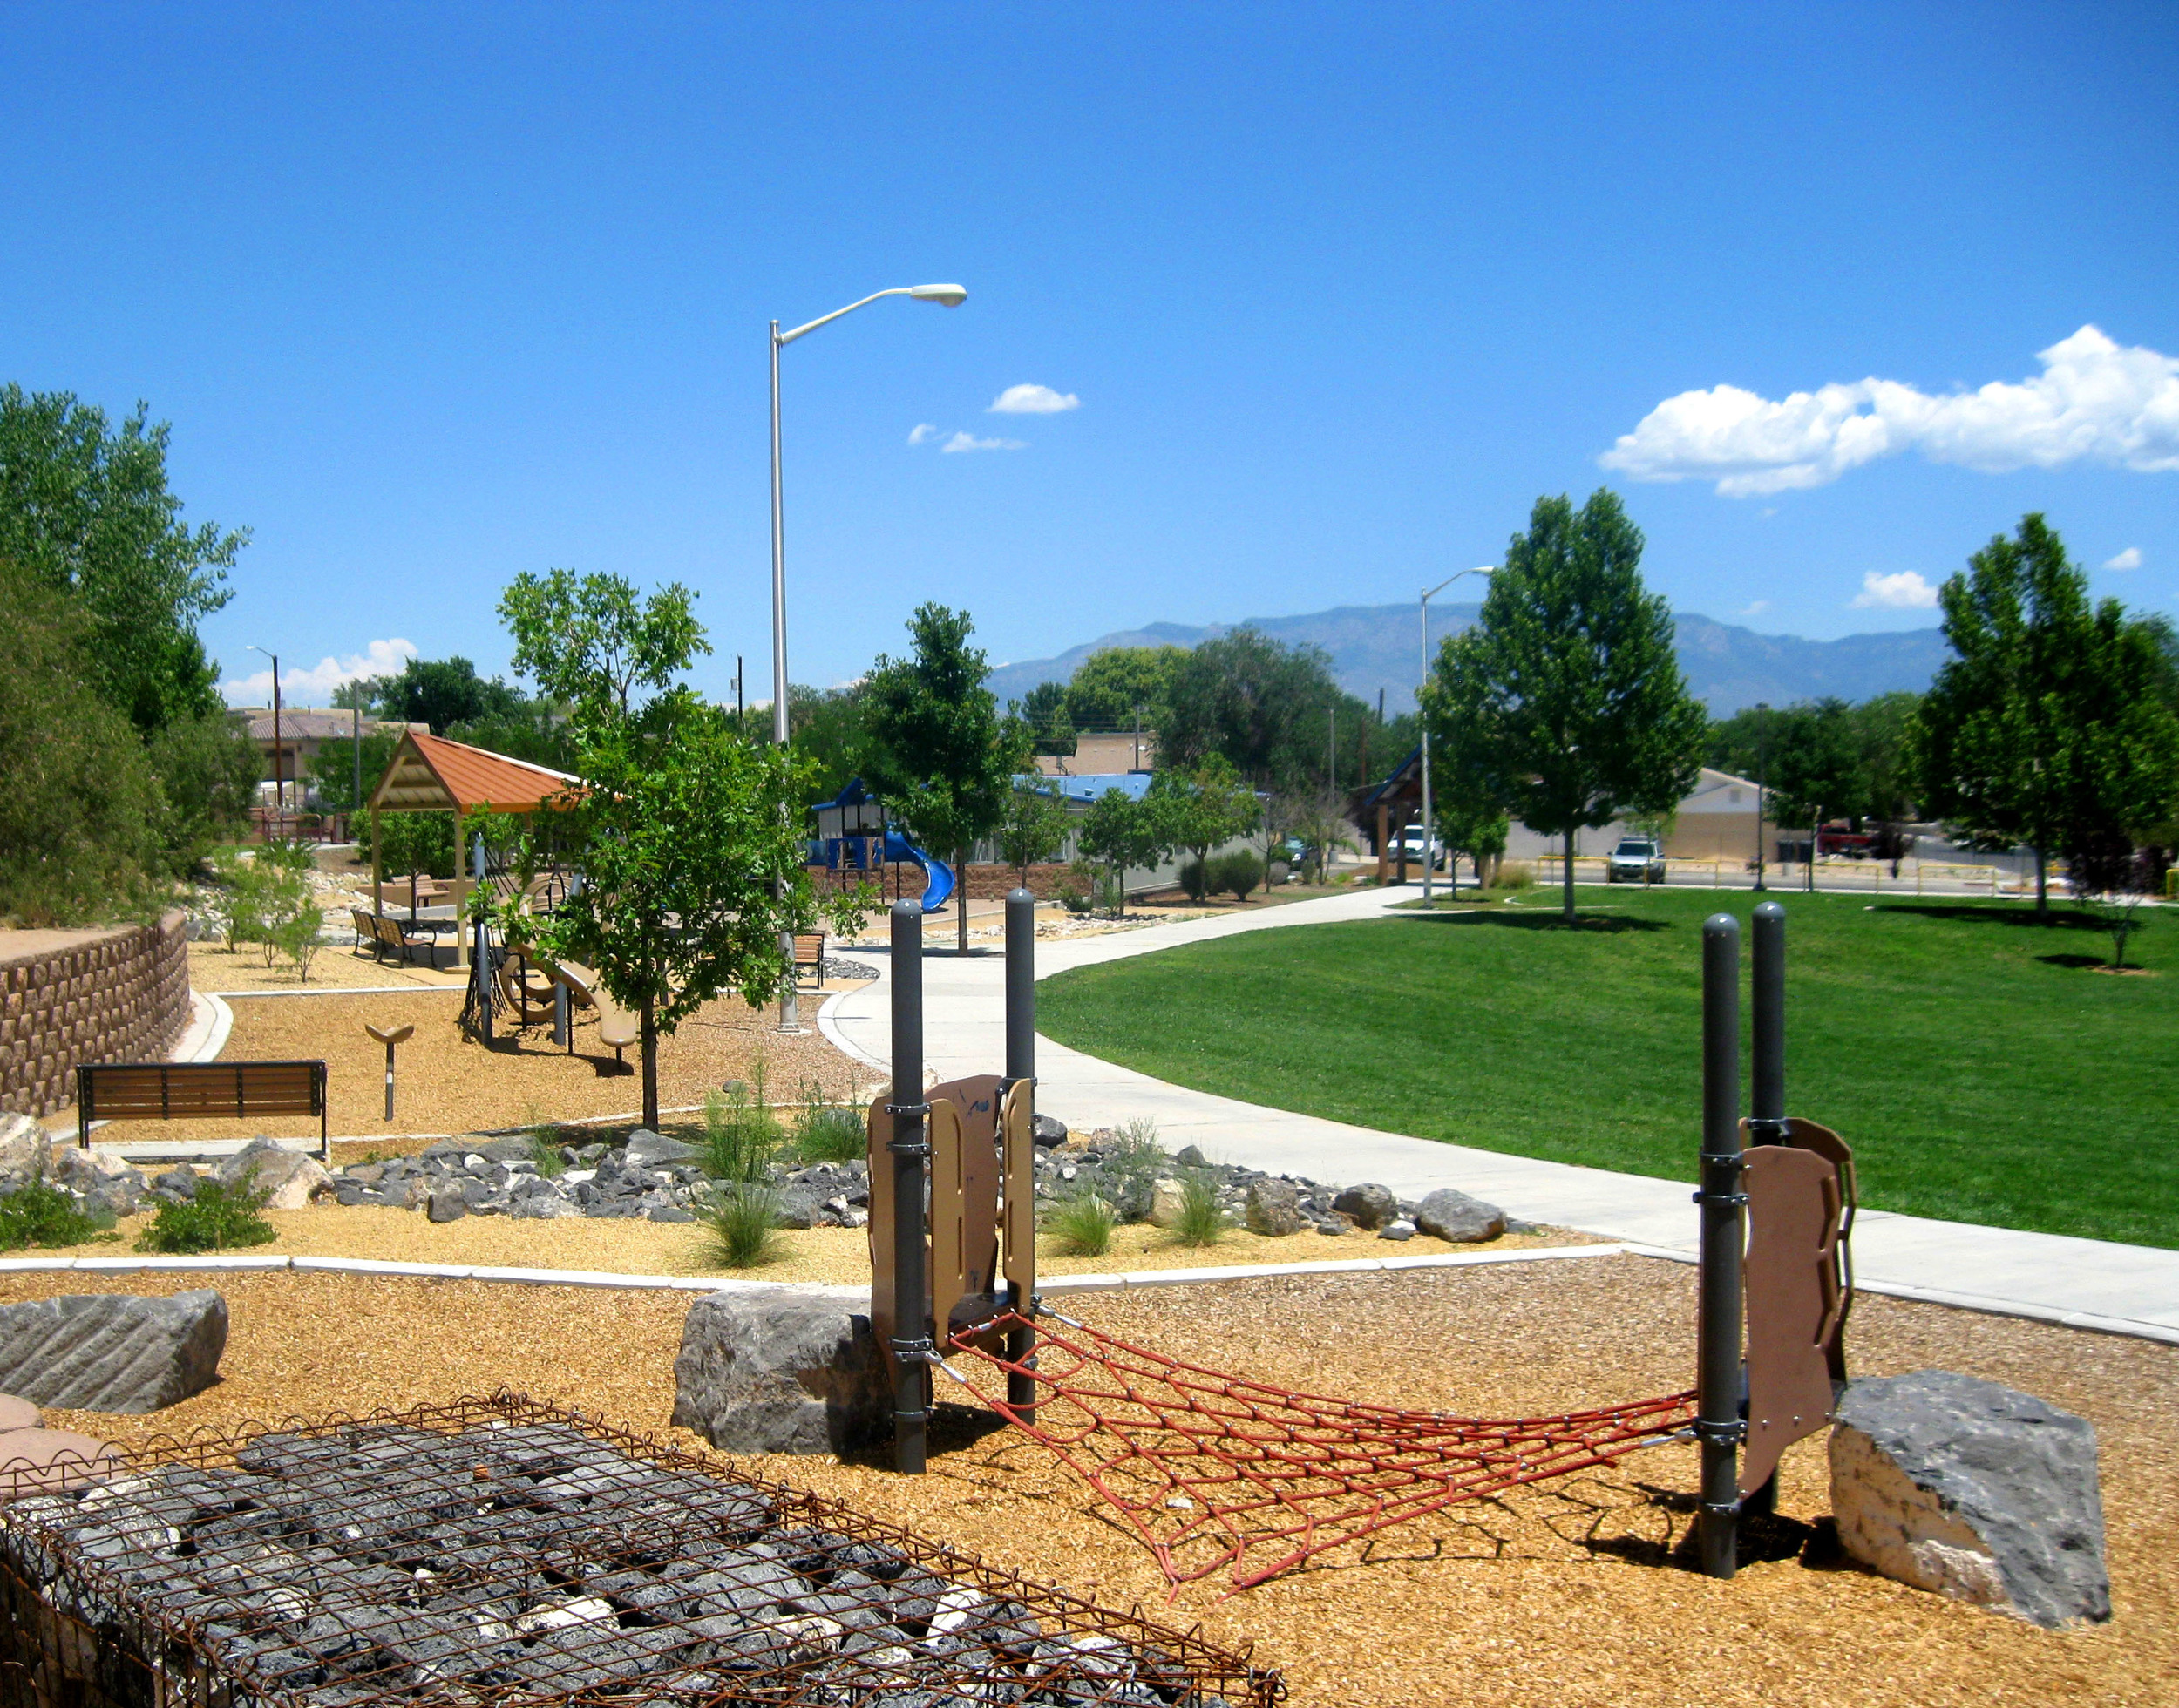 Play areas use locally available stone integrated with off-the-shelf play equipment